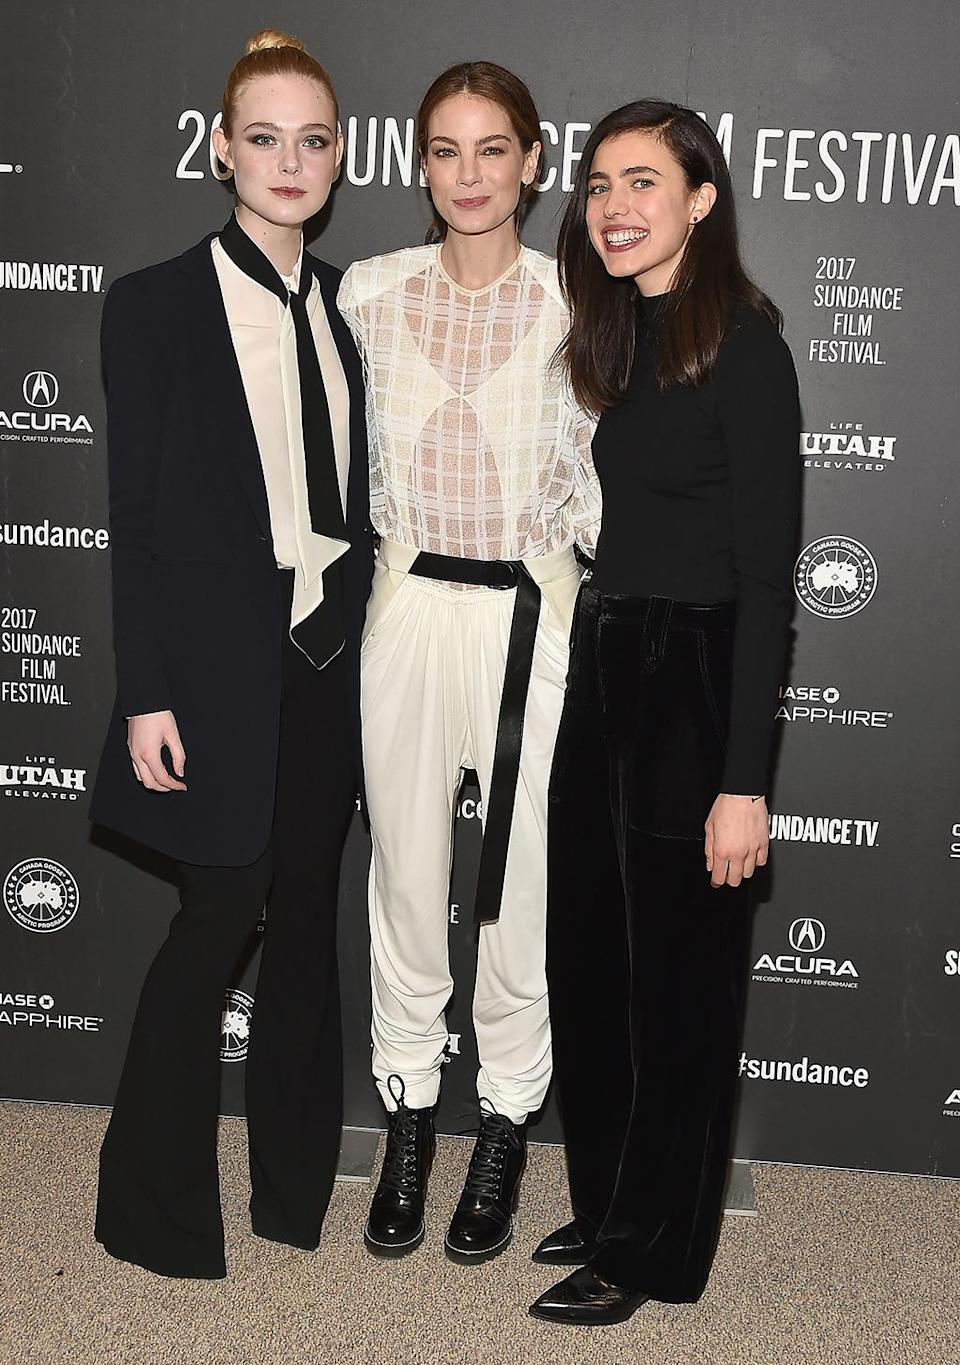 <p>The 'Sidney Hall' actresses arrive for the premiere on Jan. 25. (Photo: Alberto E. Rodriguez/Getty Images) </p>